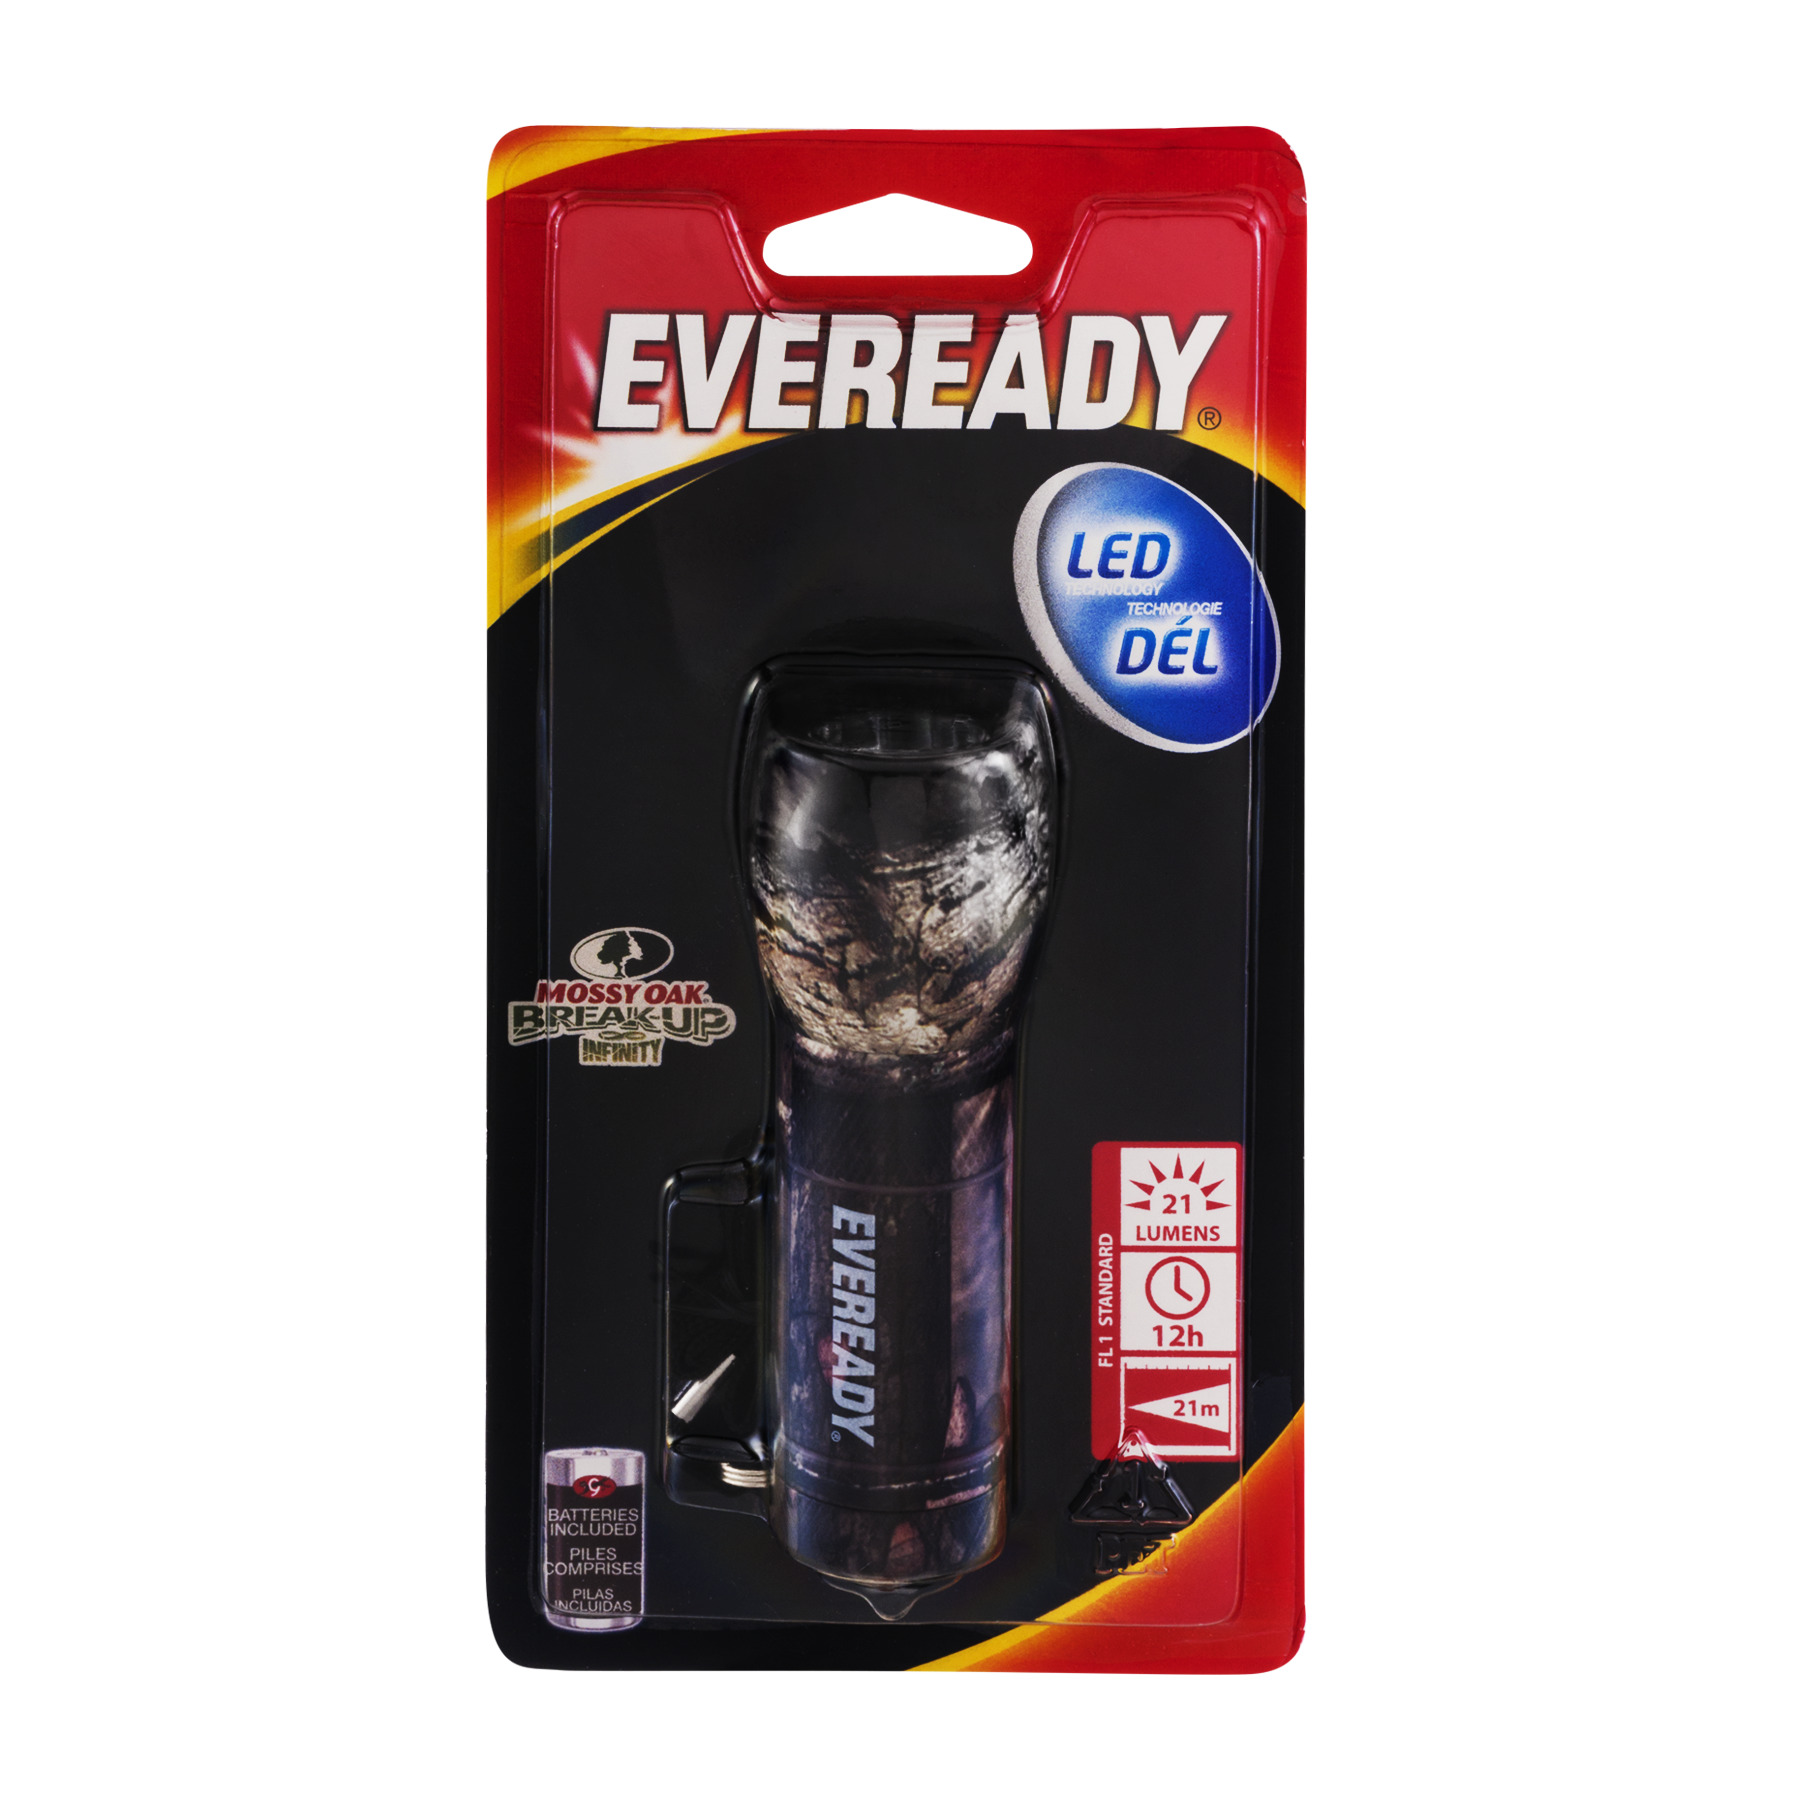 Eveready LED Mossy Oak Break-Up Infinity Flashlight, 1.0 CT